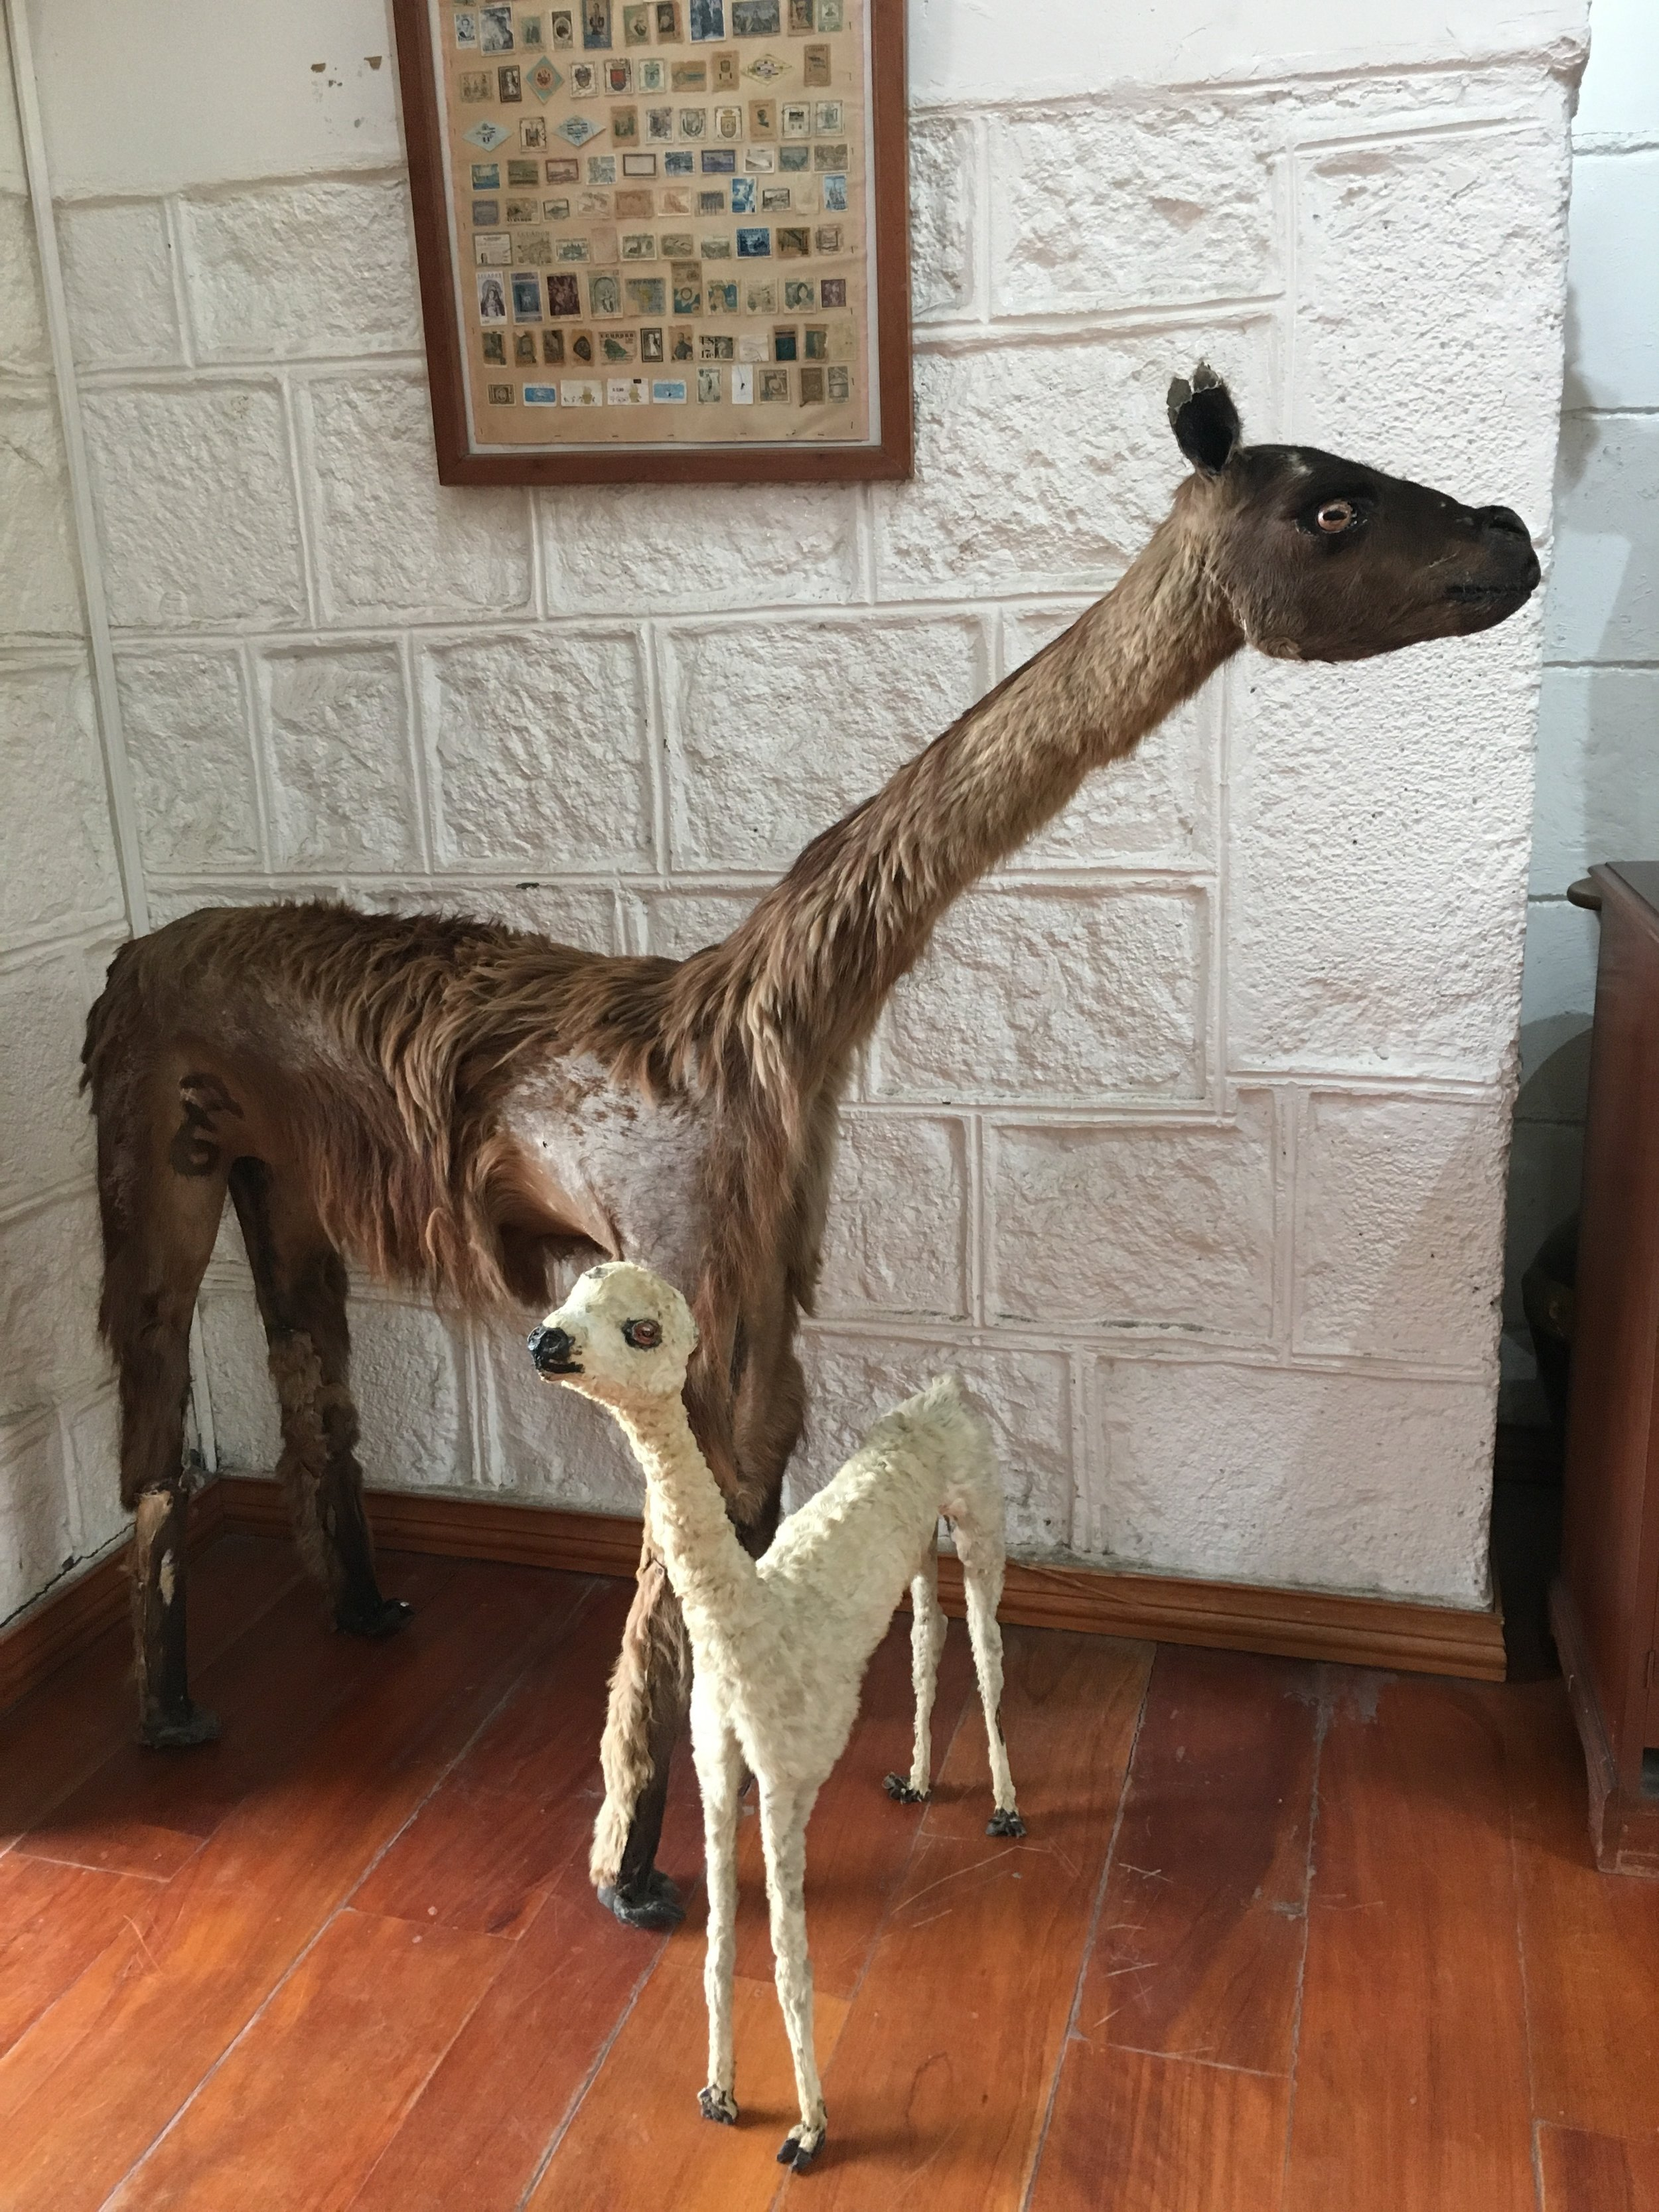 Just a glimpse of the strangest taxidermy ever. (But really, isn't all taxidermy strange?)